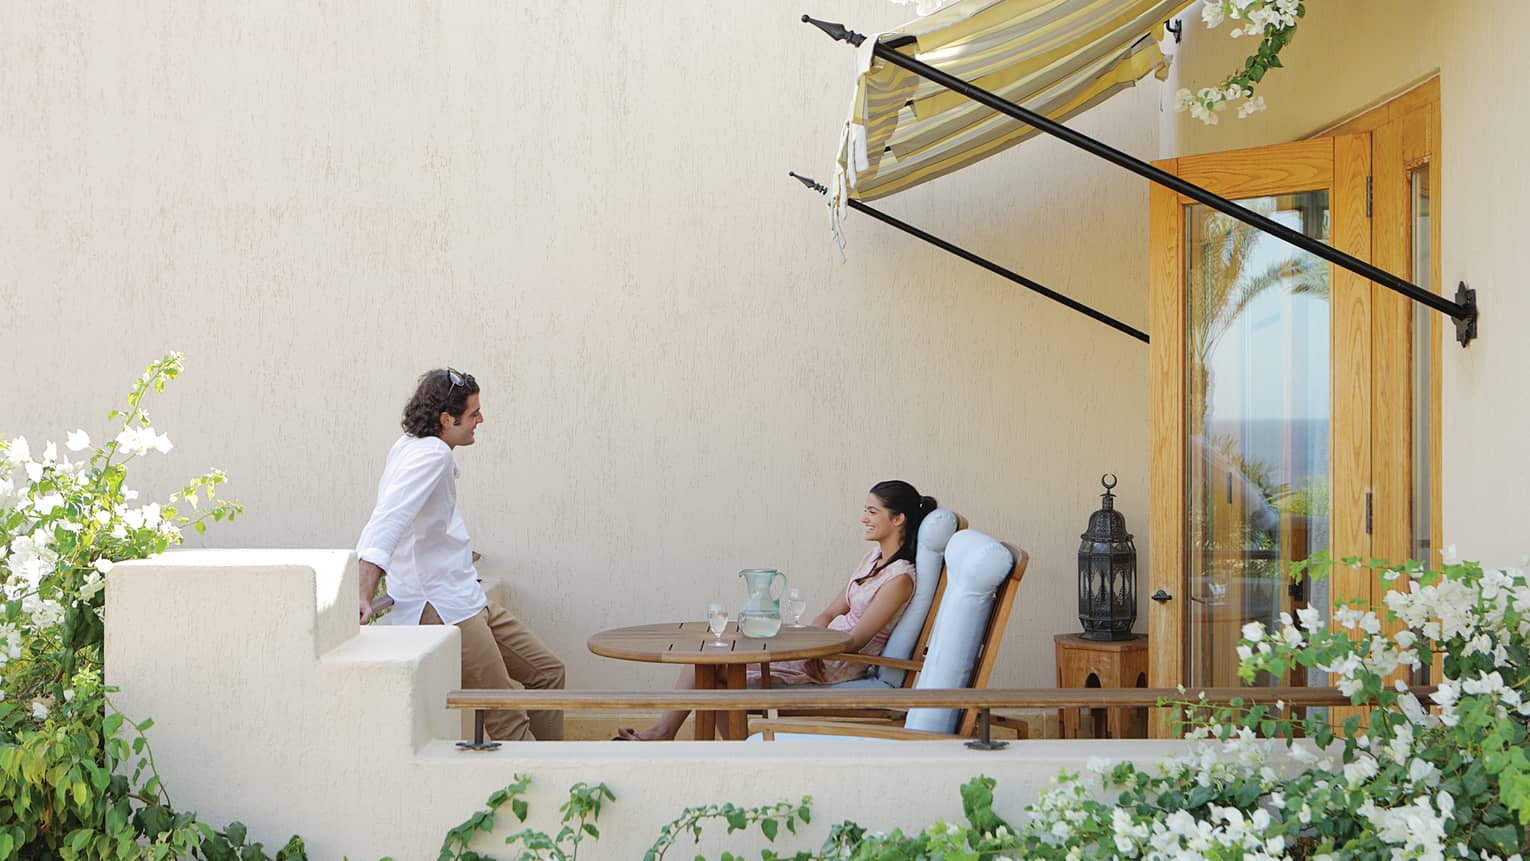 Man and woman relax at private balcony table